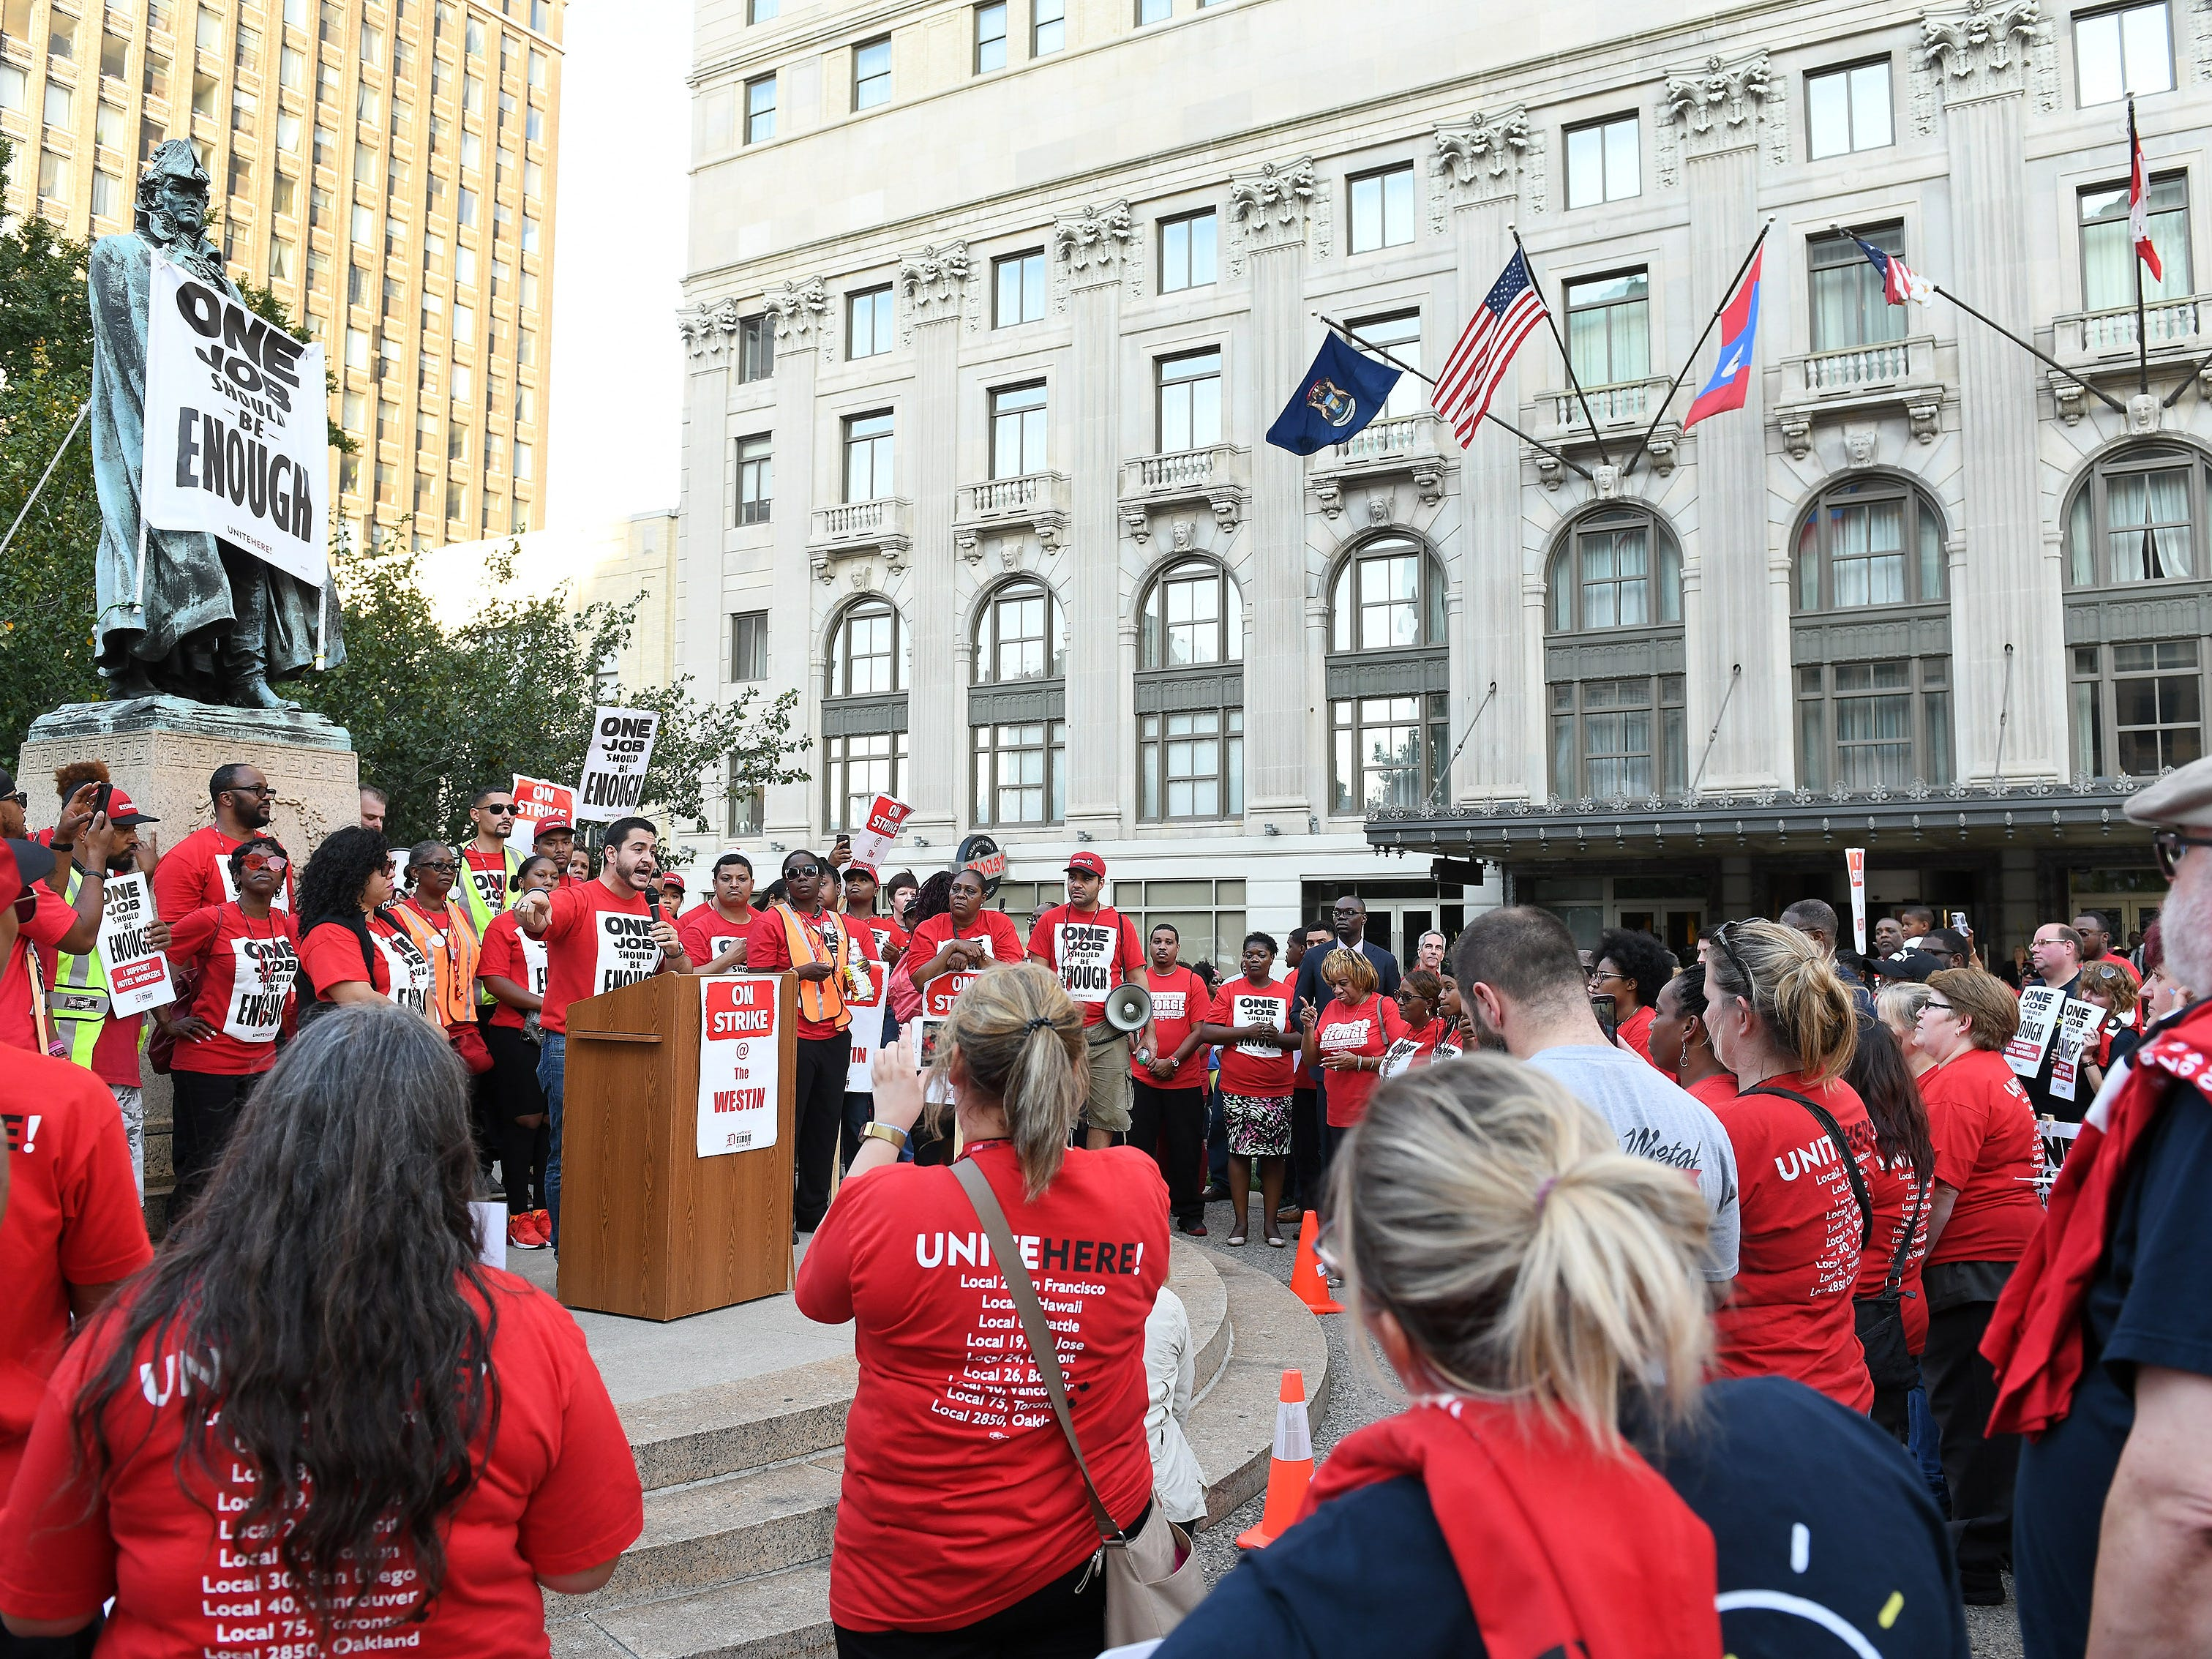 Democratic activist Abdul El-Sayed speaks at a rally for workers from Unite Here Local 24 on strike at the Westin Book Cadillac.